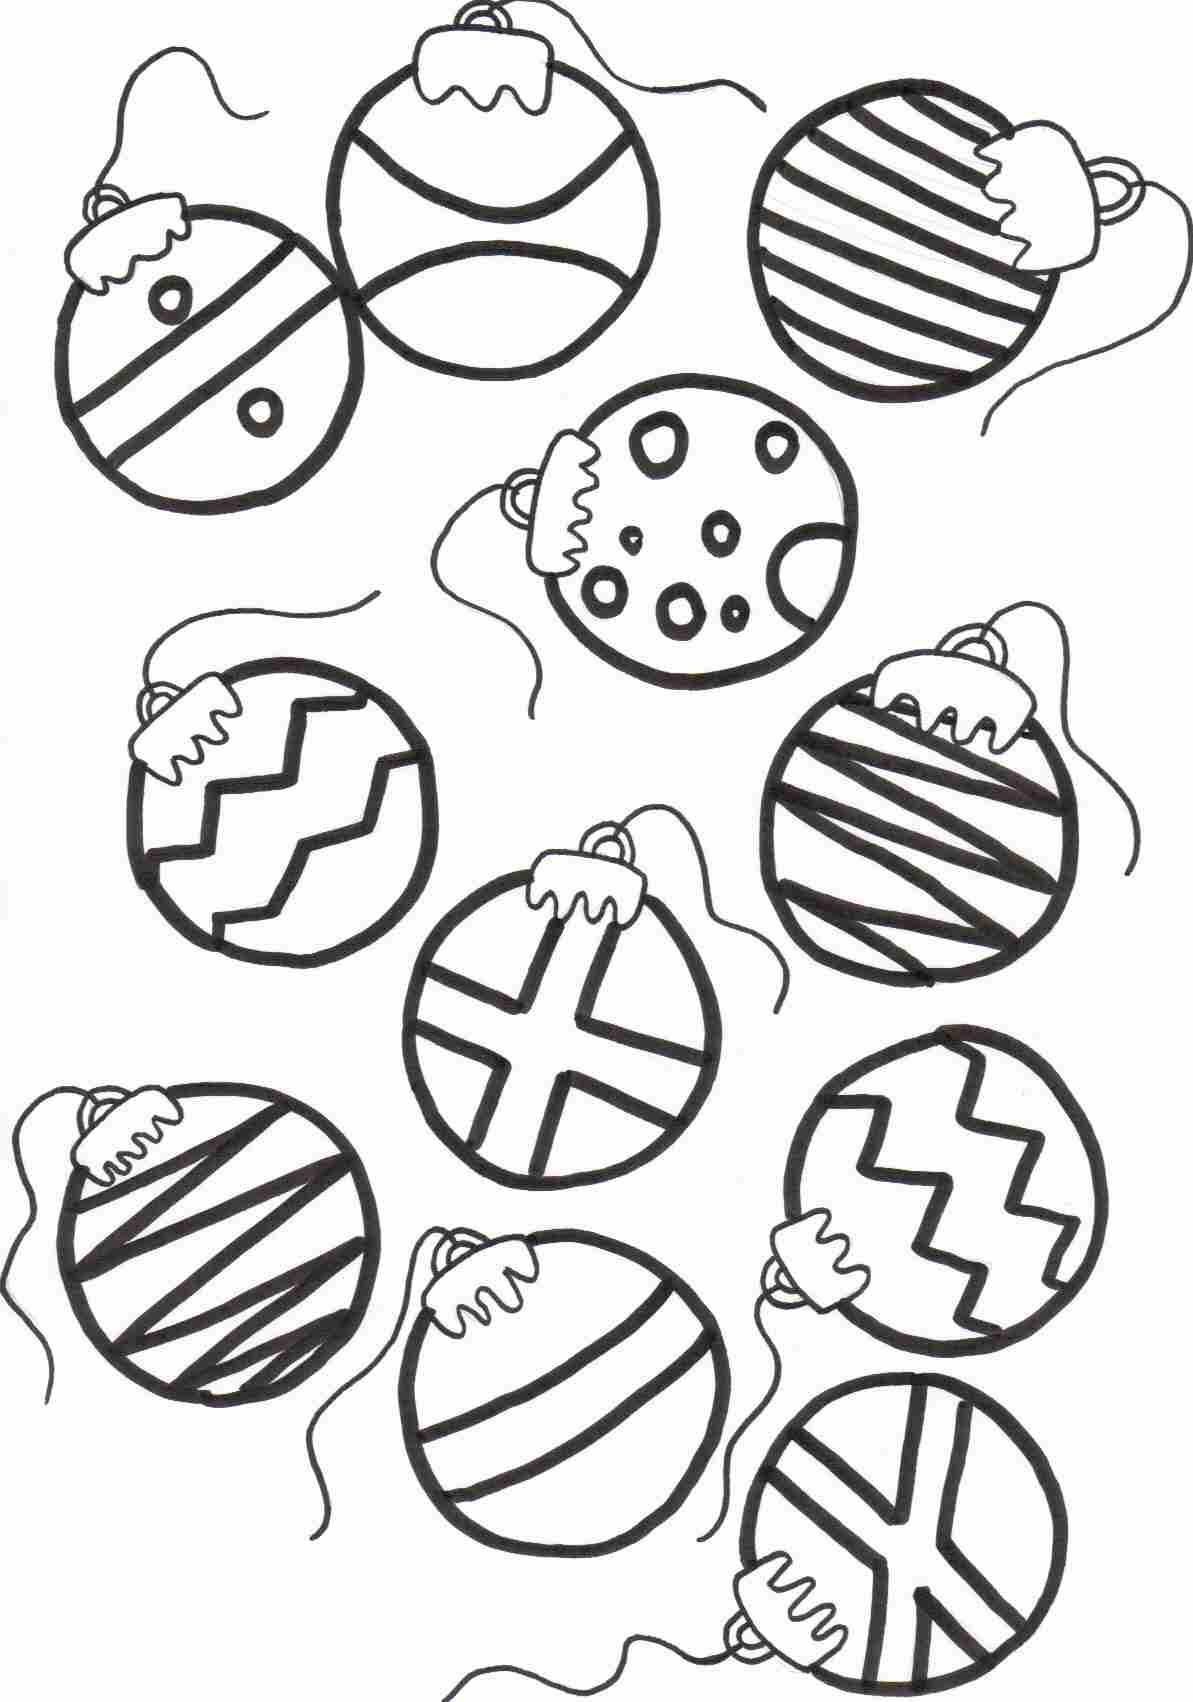 Download And Print Christmas Coloring Pages For Kids Ornaments